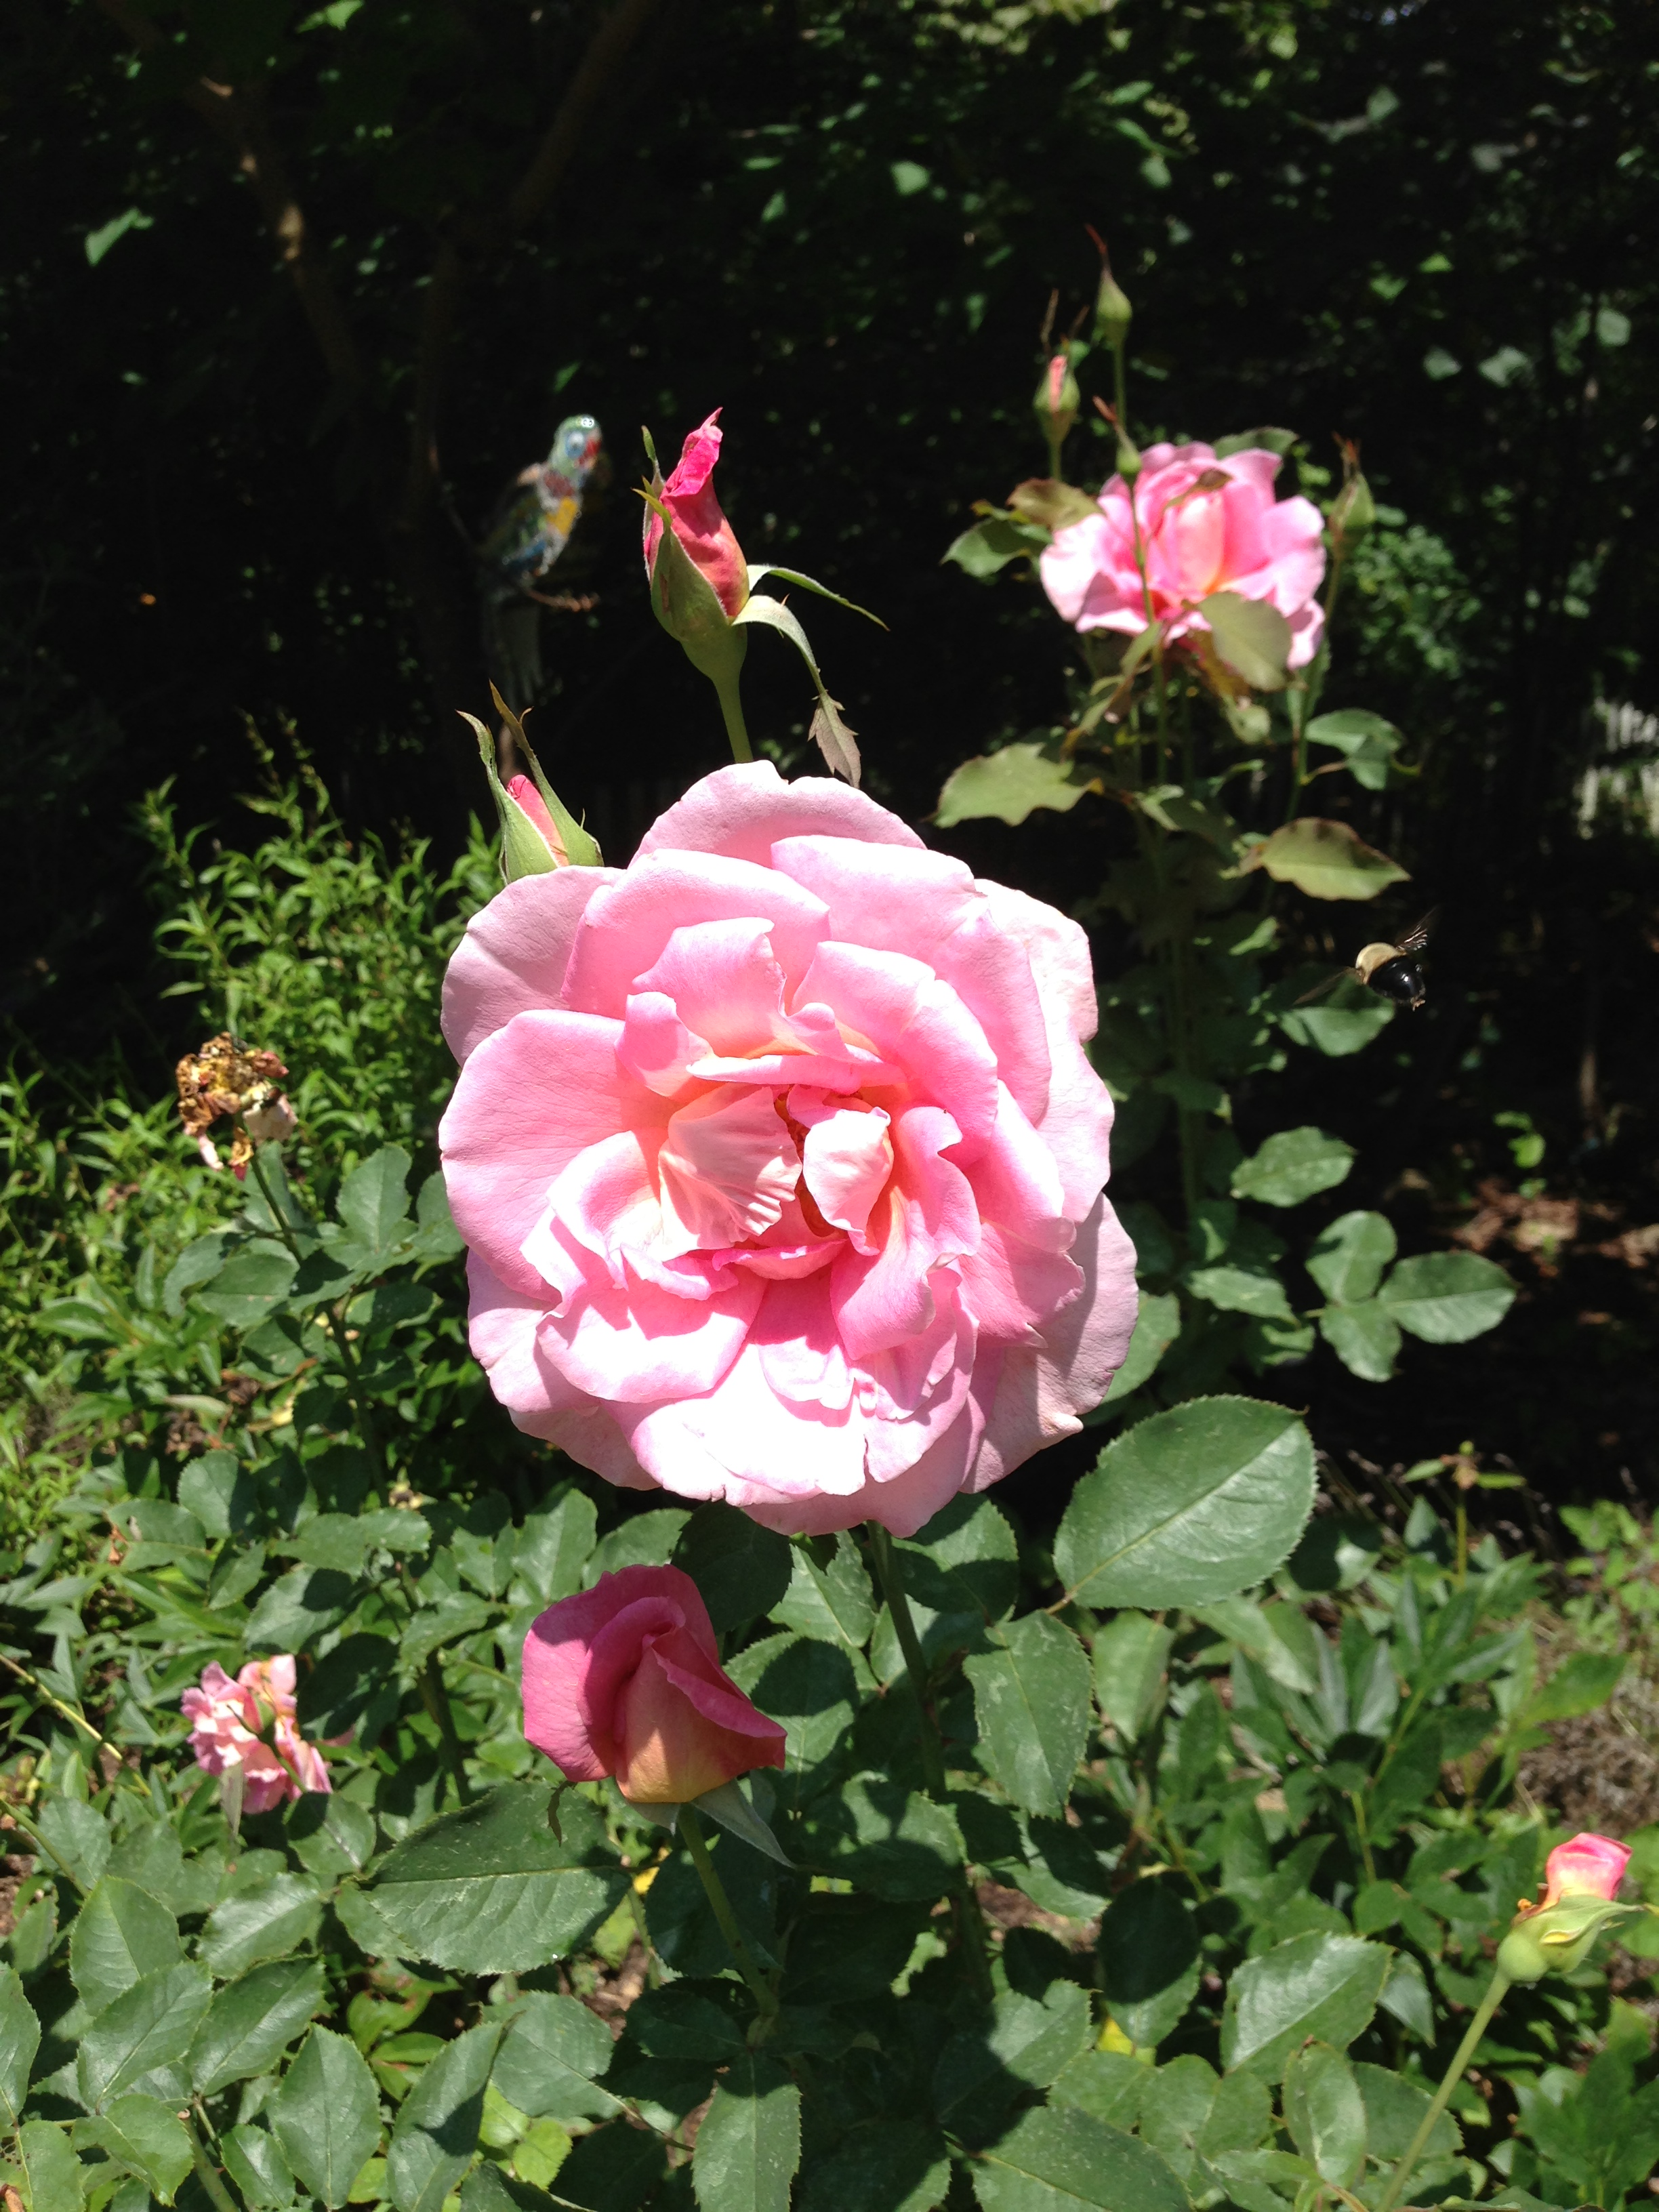 Roses In Garden: Disease-resistant Garden Roses Are New On The Market